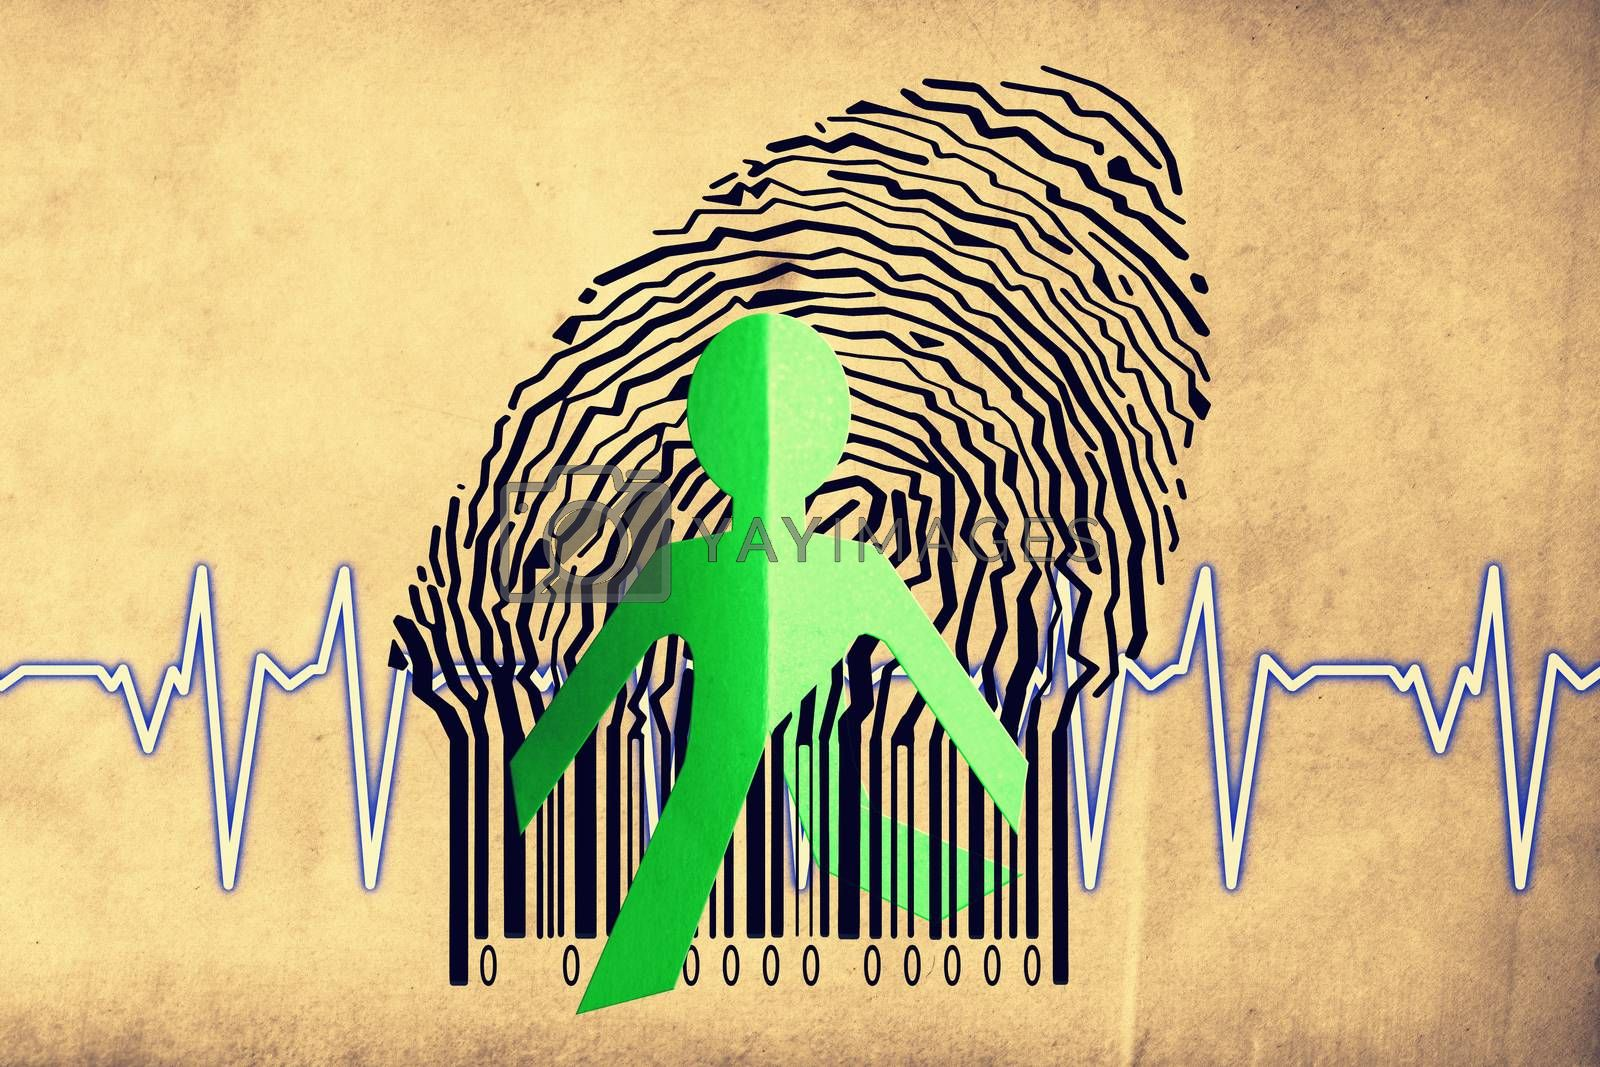 Paperman coming out of a bar code with cardiogram